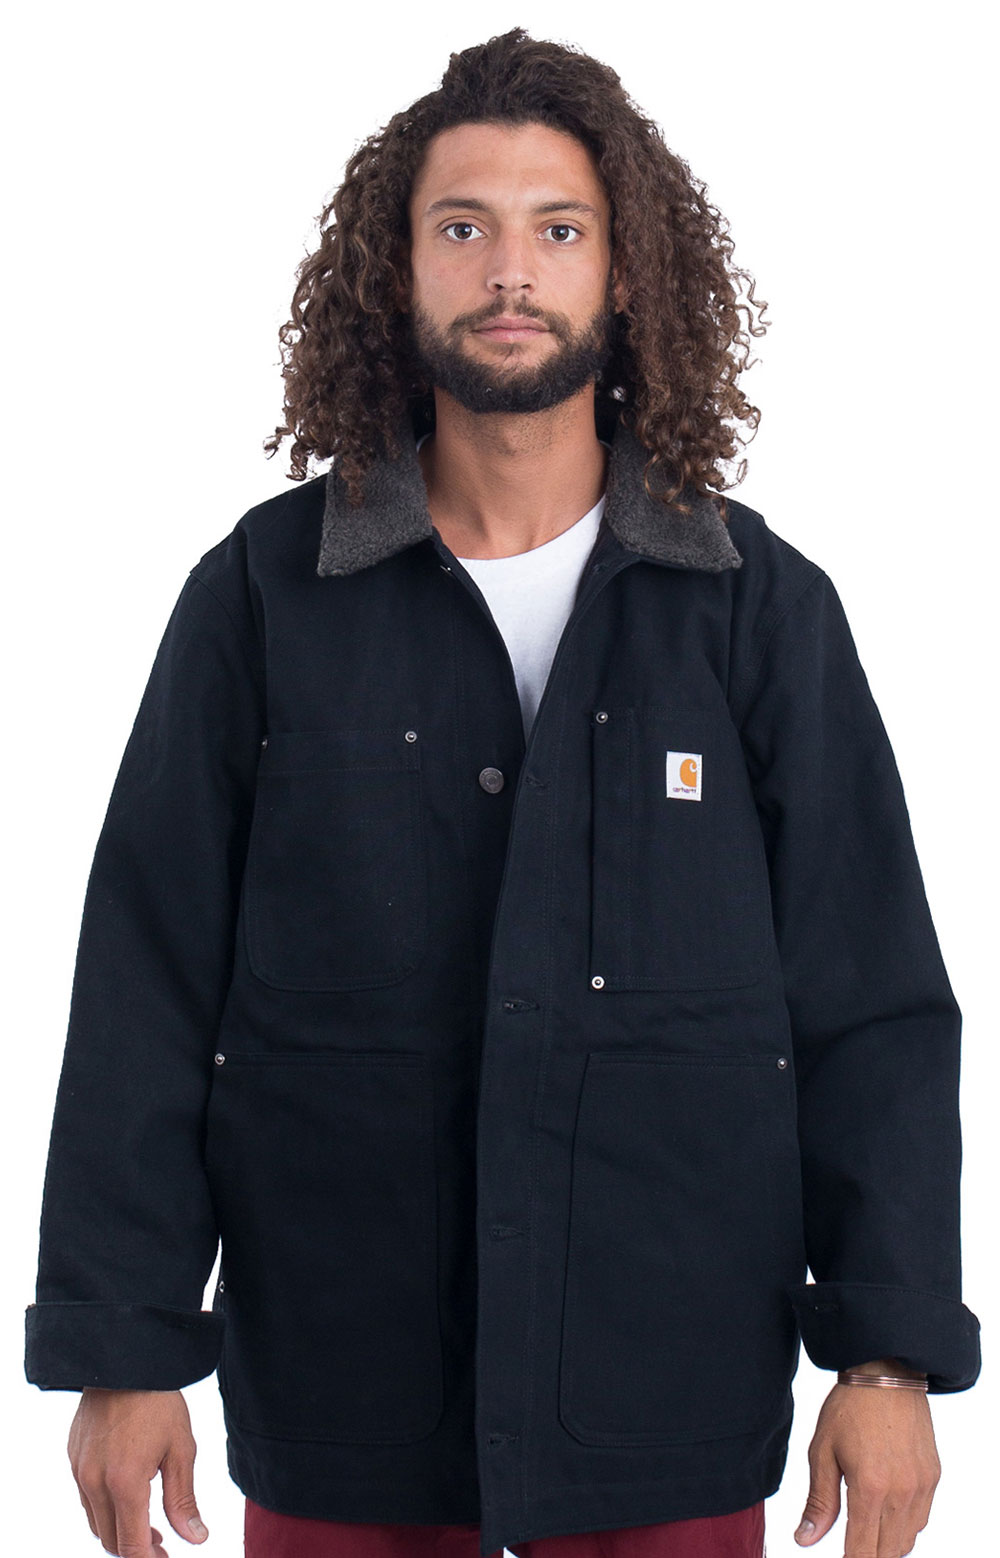 (102707) Full Swing Chore Coat - Black